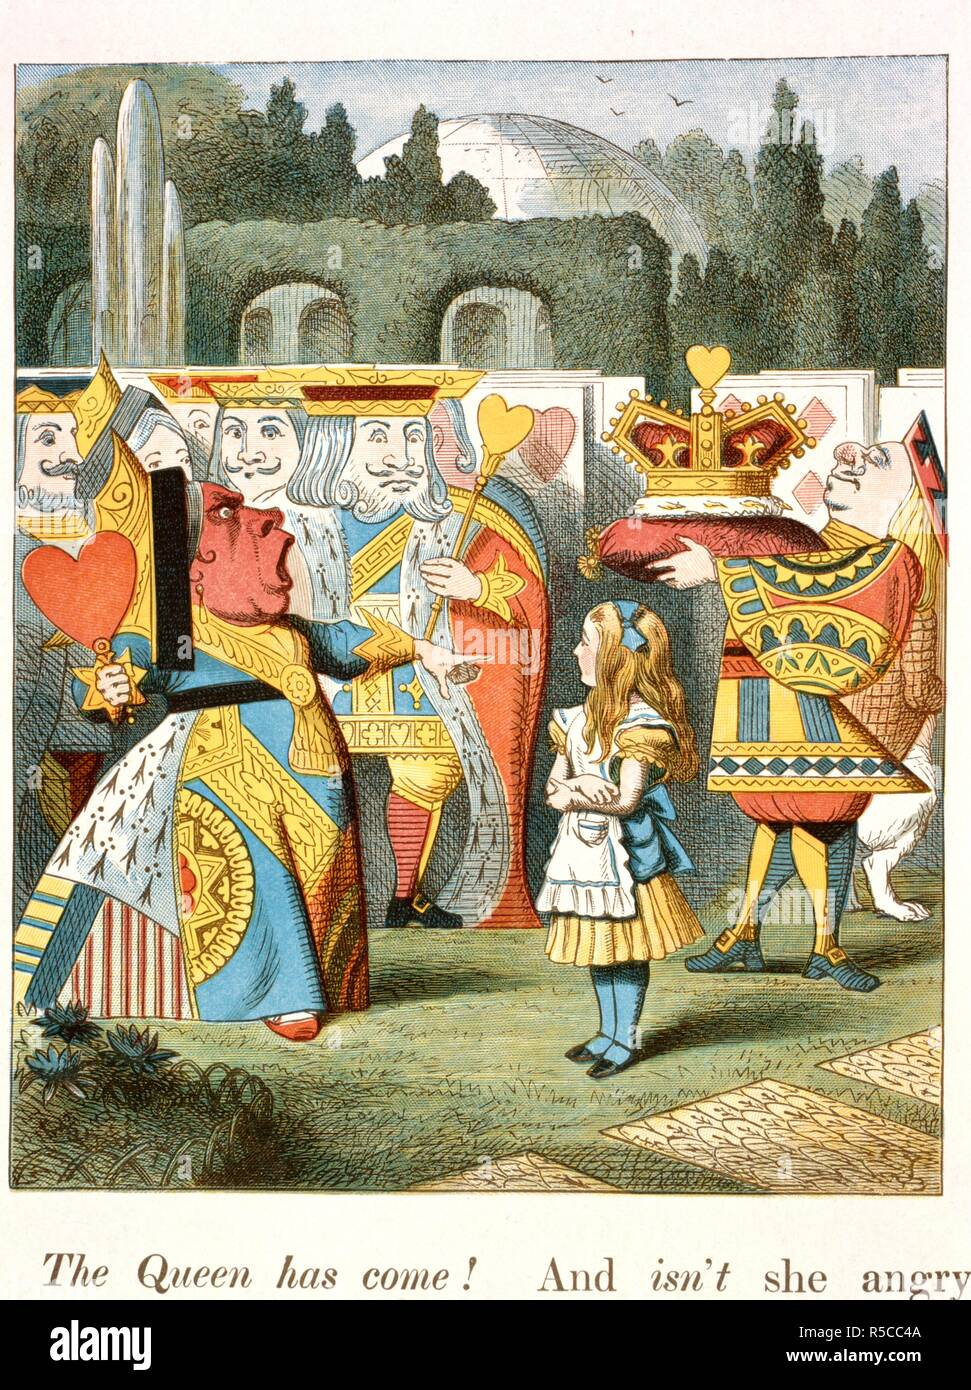 The angry Queen. The Queen of Hearts. . The Nursery :Alice,: containing twenty coloured en. Macmillan & Co.: London, 1890. Source: Cup.410.g.74, 44. Language: English. Author: TENNIEL, JOHN. Carroll, Lewis pseud. [i. e. Charles Lutwidge Dodgson]. Stock Photo